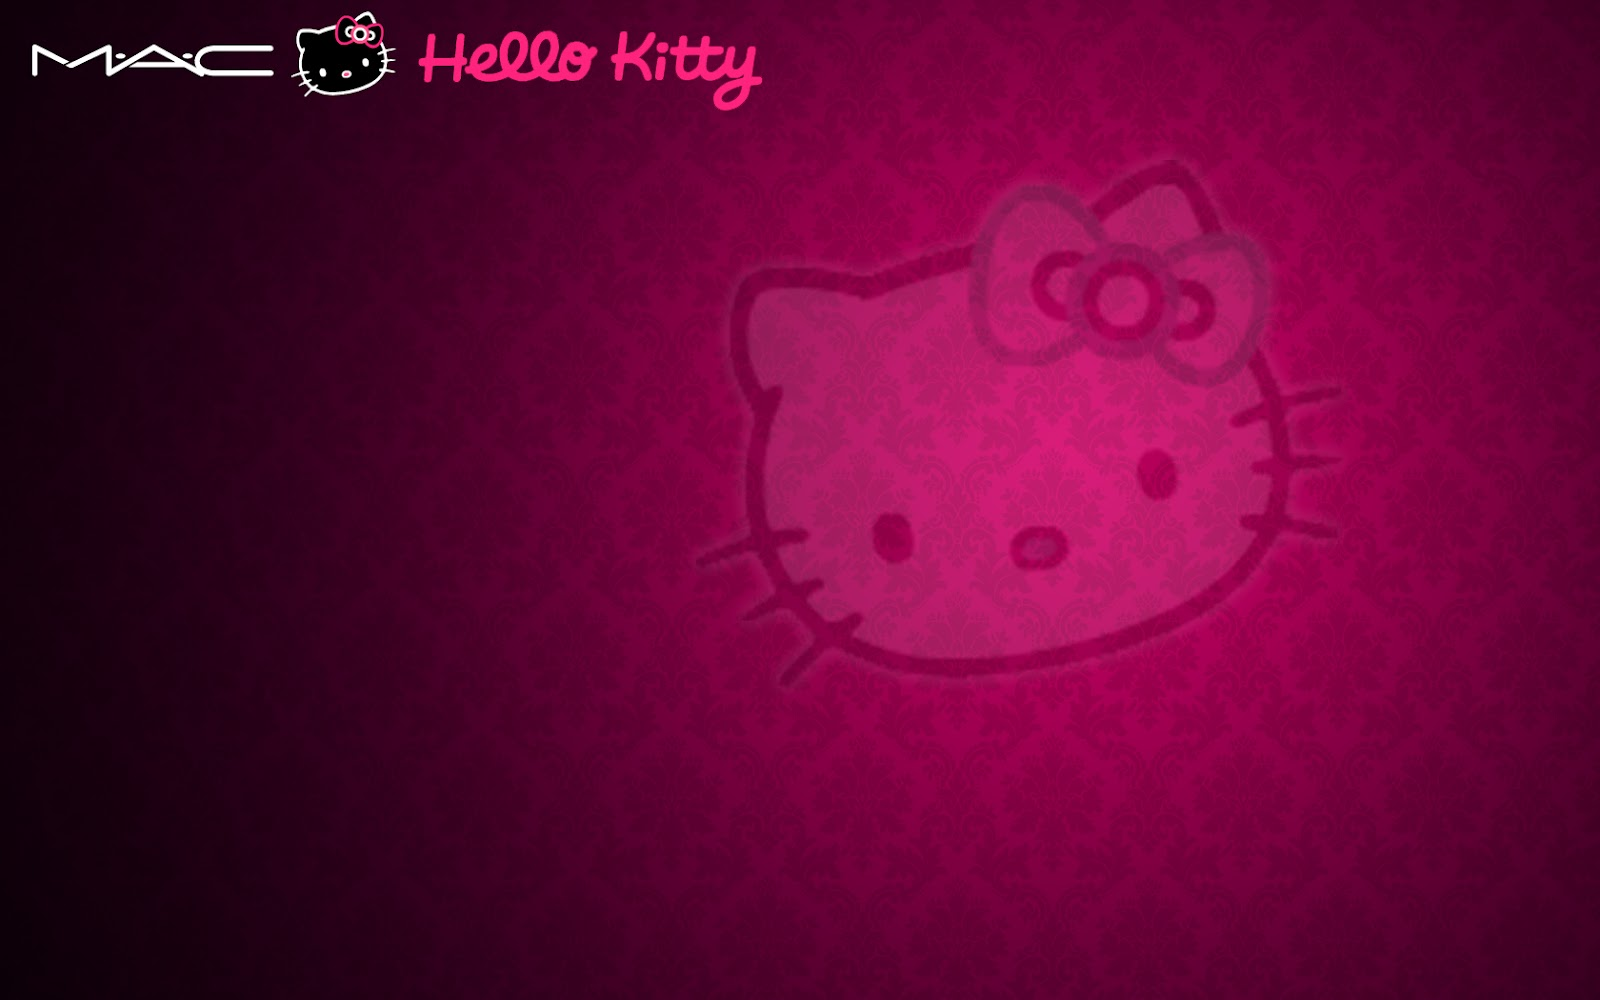 Desktop Wallpaper – Desktop Hd Wallpapers: hddesktopwallpaperblog.blogspot.com/2012/06/hello-kitty-wallpaper.html